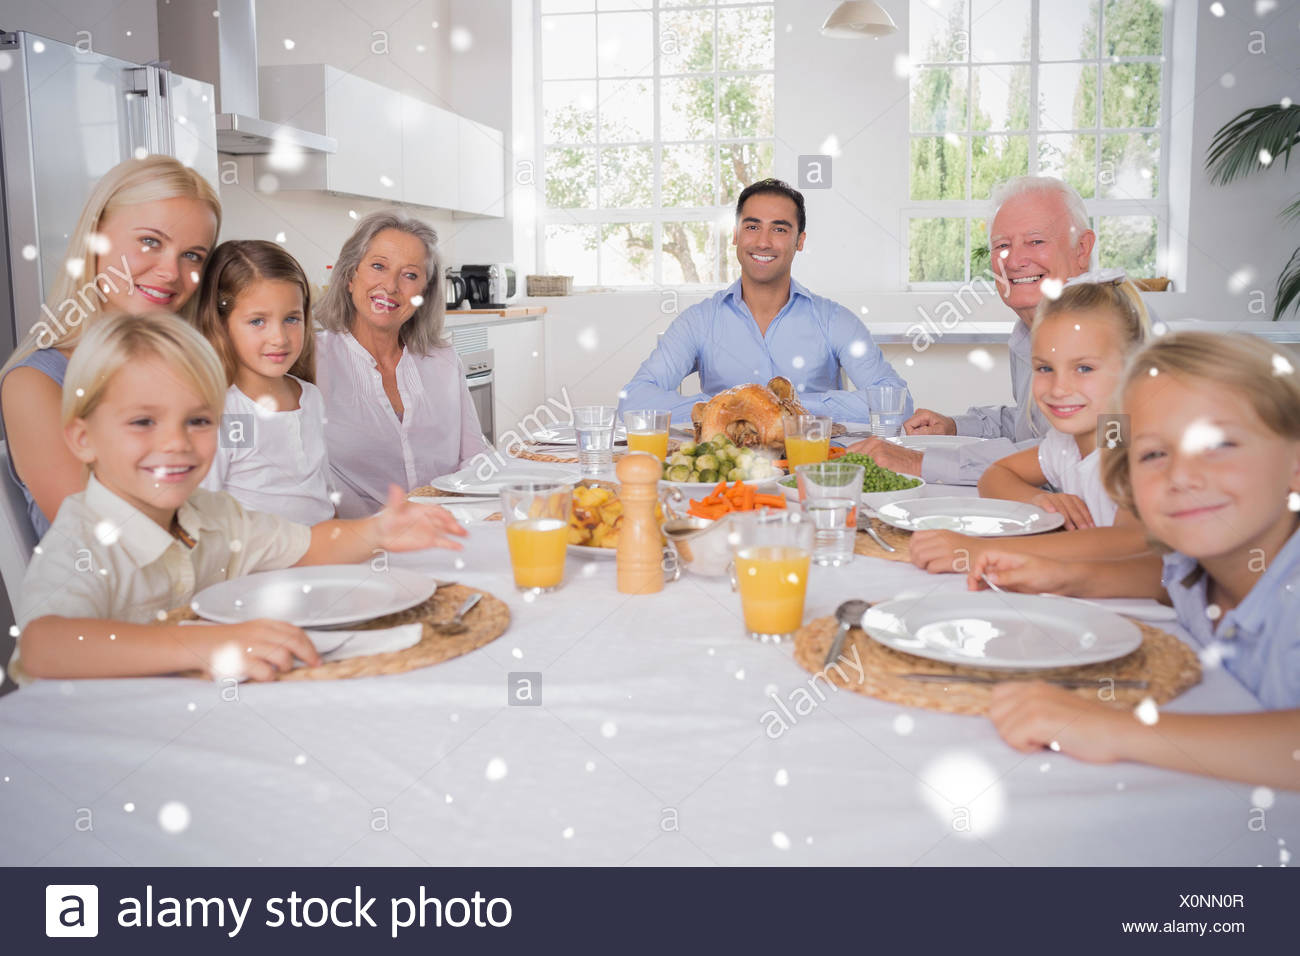 Composite image of family celebrating thanksgiving - Stock Image